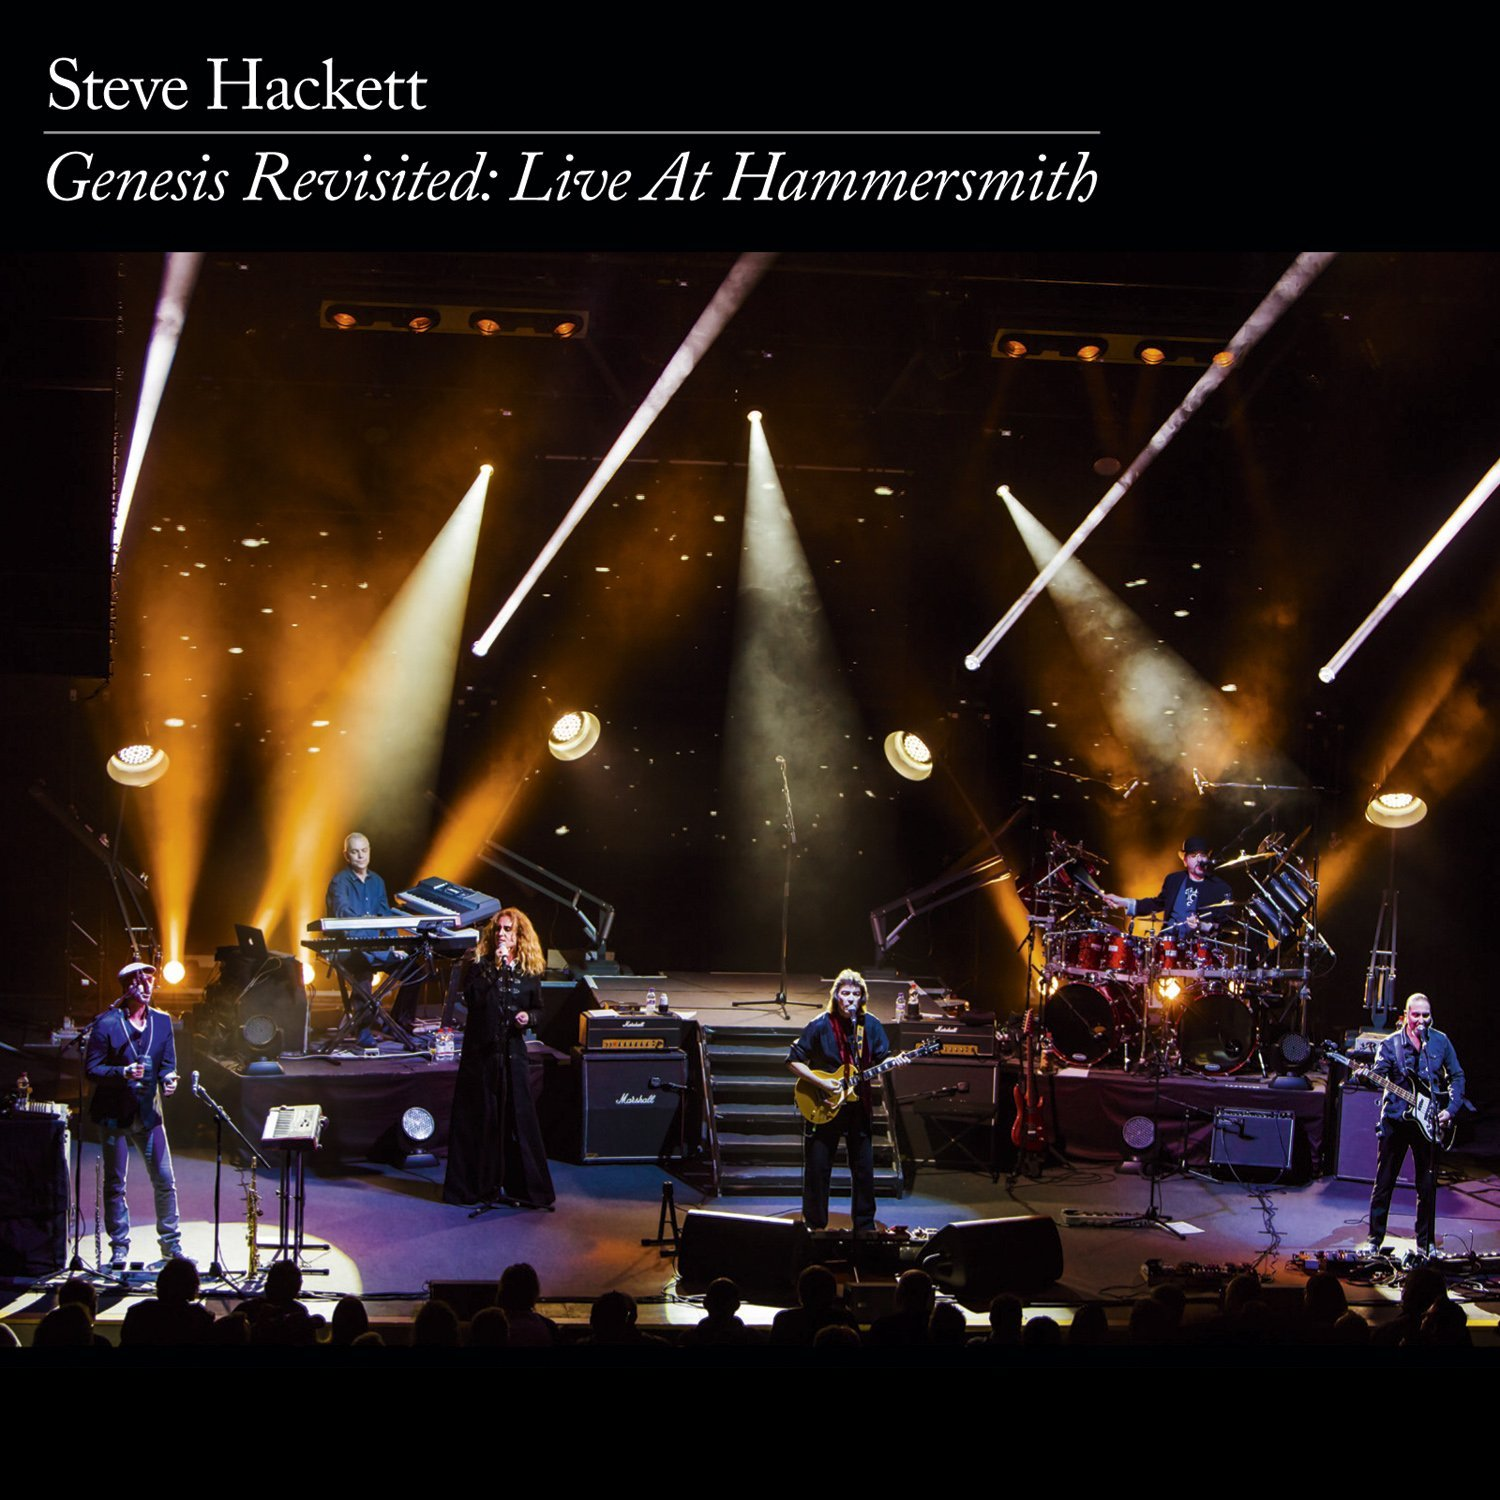 Genesis Revisited: Live at Hammersmith Cover art